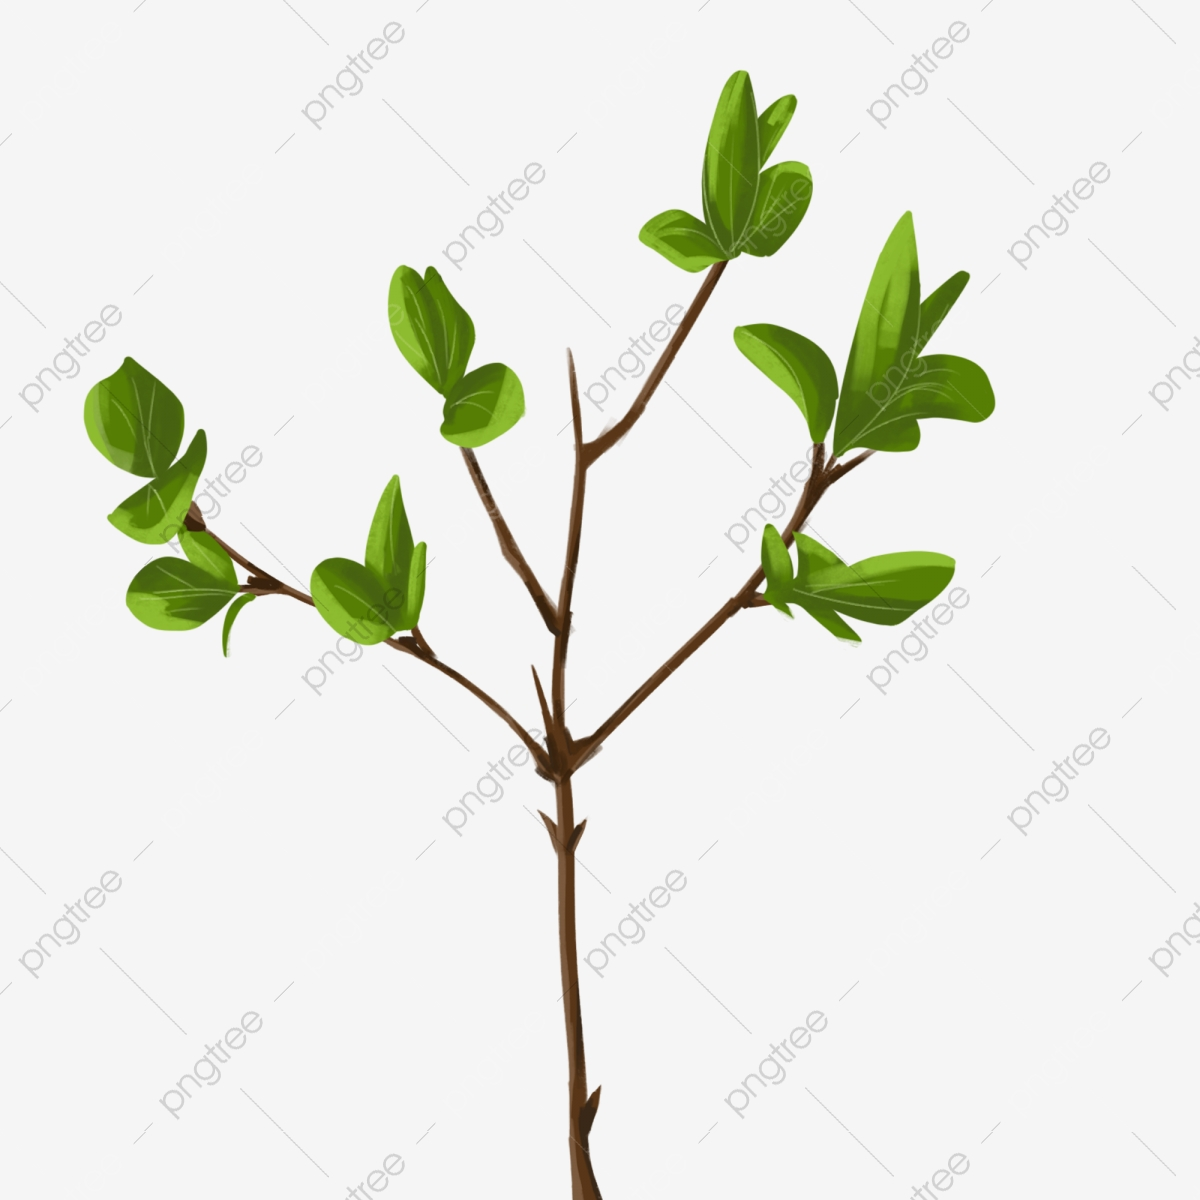 Leaves And Branches 2 Leaf Branch Branch Cartoon Png Transparent Clipart Image And Psd File For Free Download